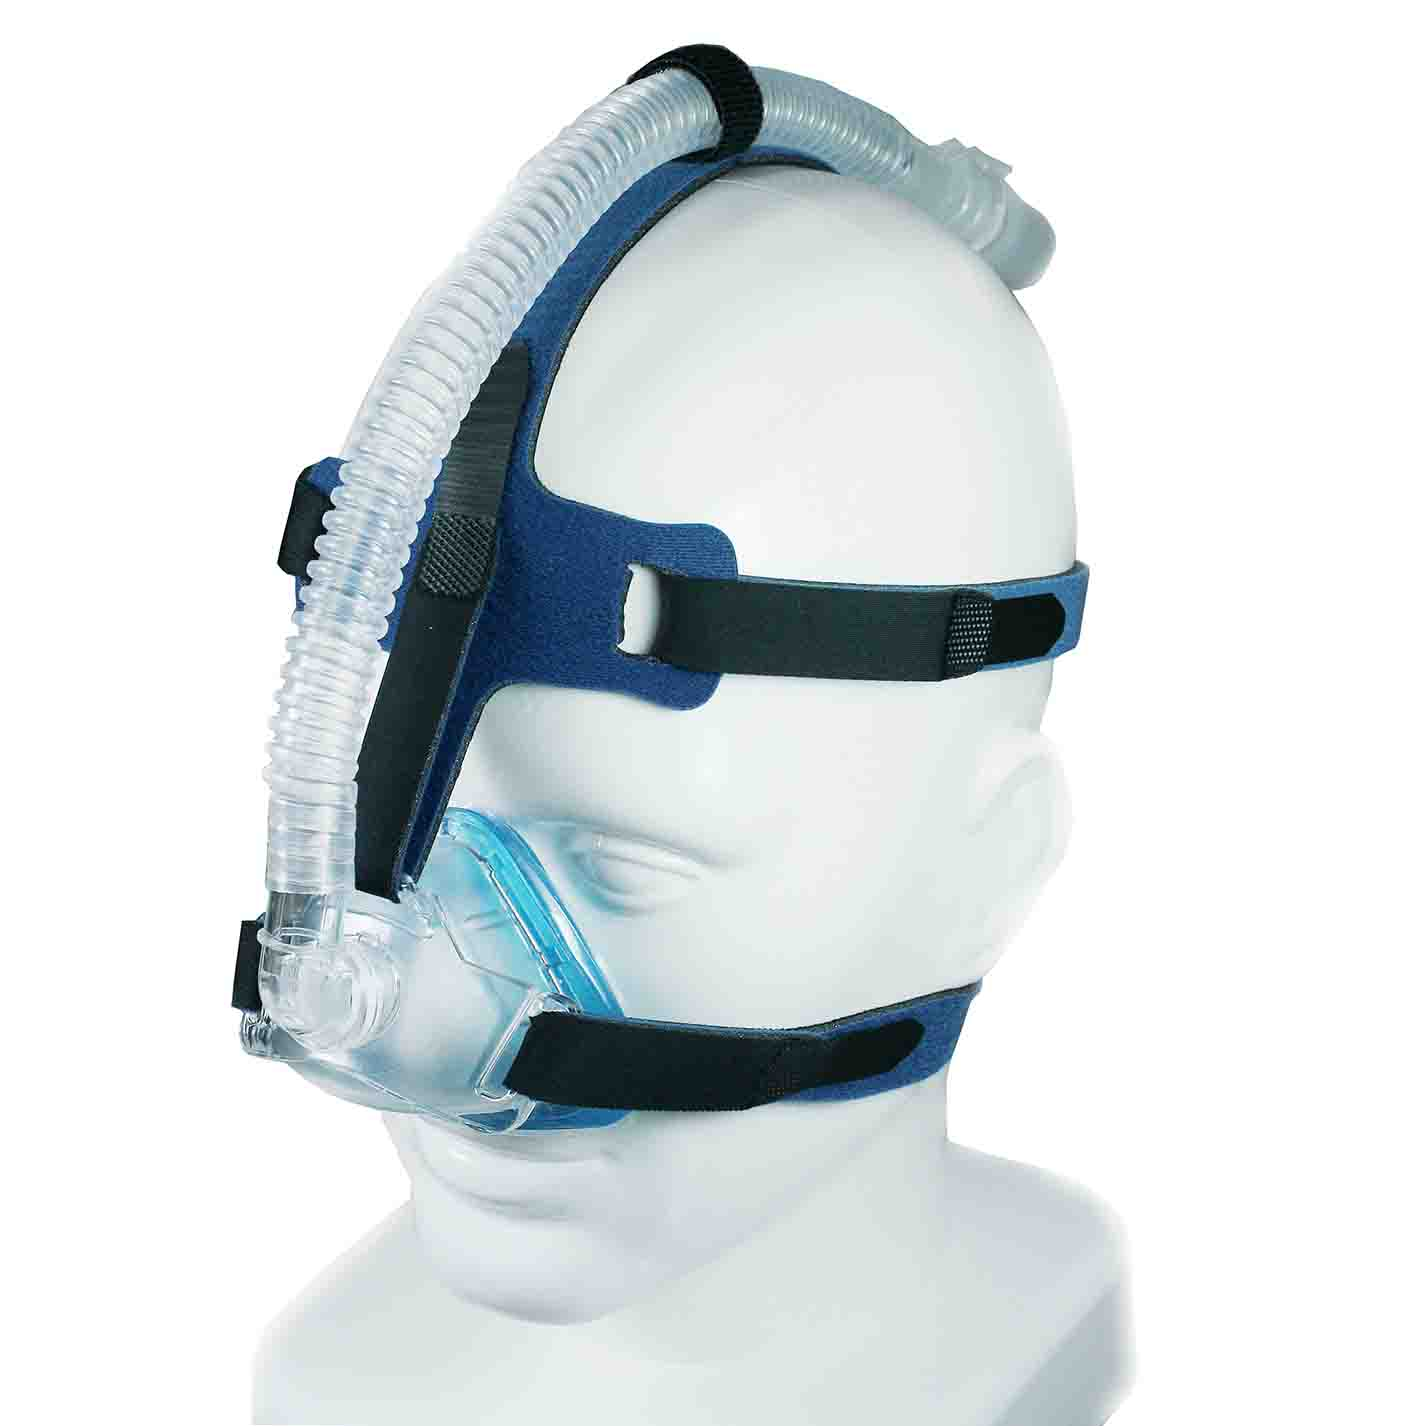 iQ Blue Vented Nasal Mask with Headgear from SleepNet